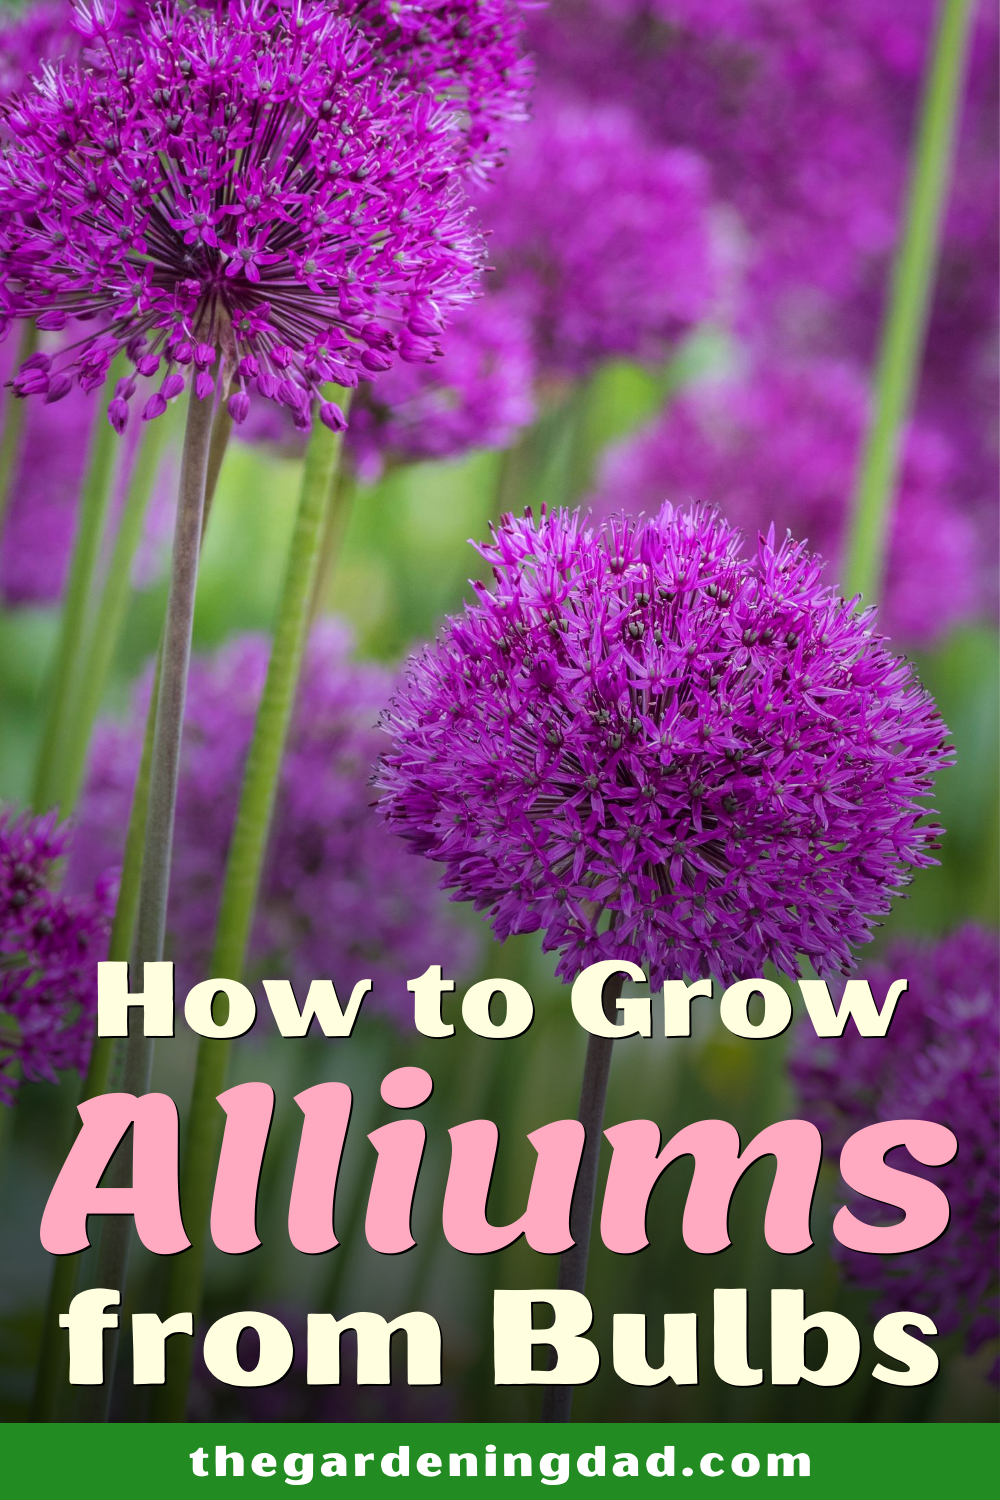 How To Grow Ornamental Allium For Beginners The Gardening Dad In 2020 Planting Flowers 101 Gardening For Beginners Garden Planning Layout